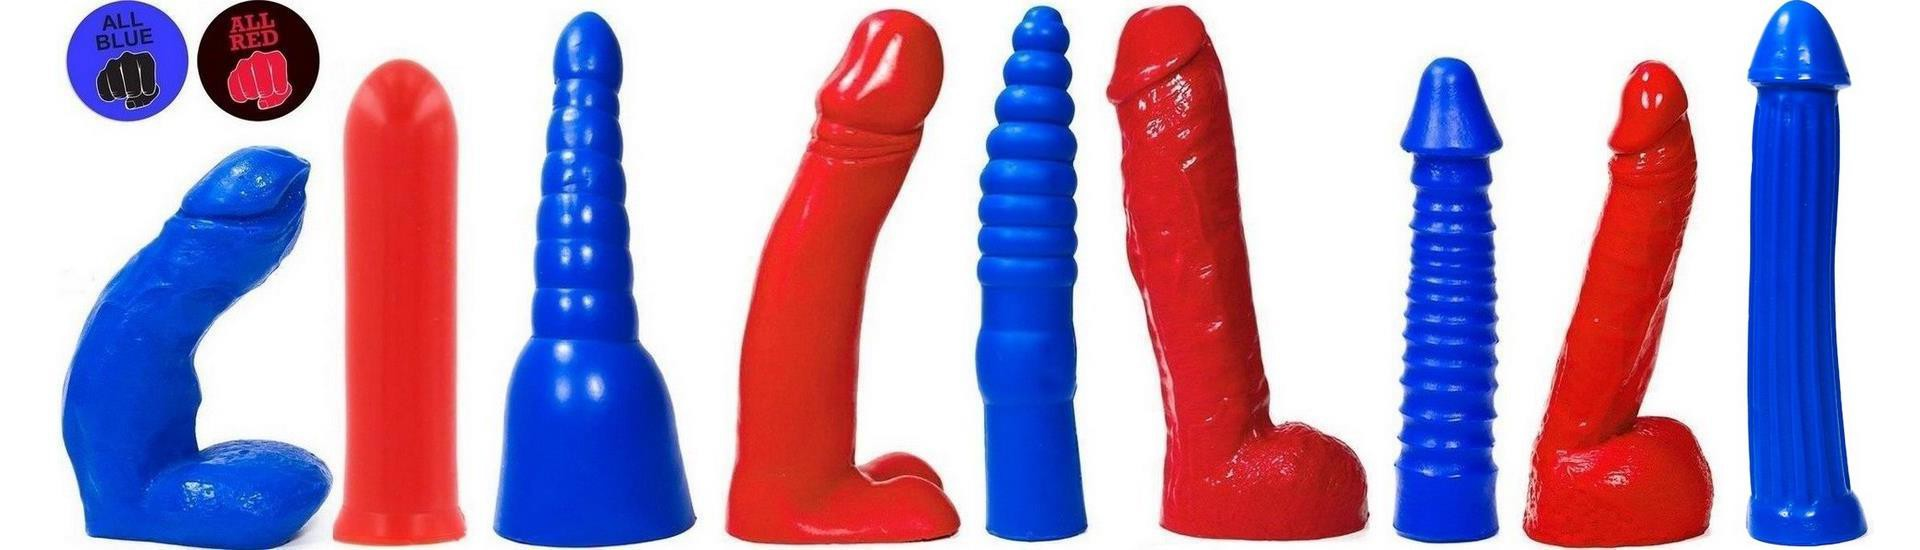 All Blue & All Red Dildos